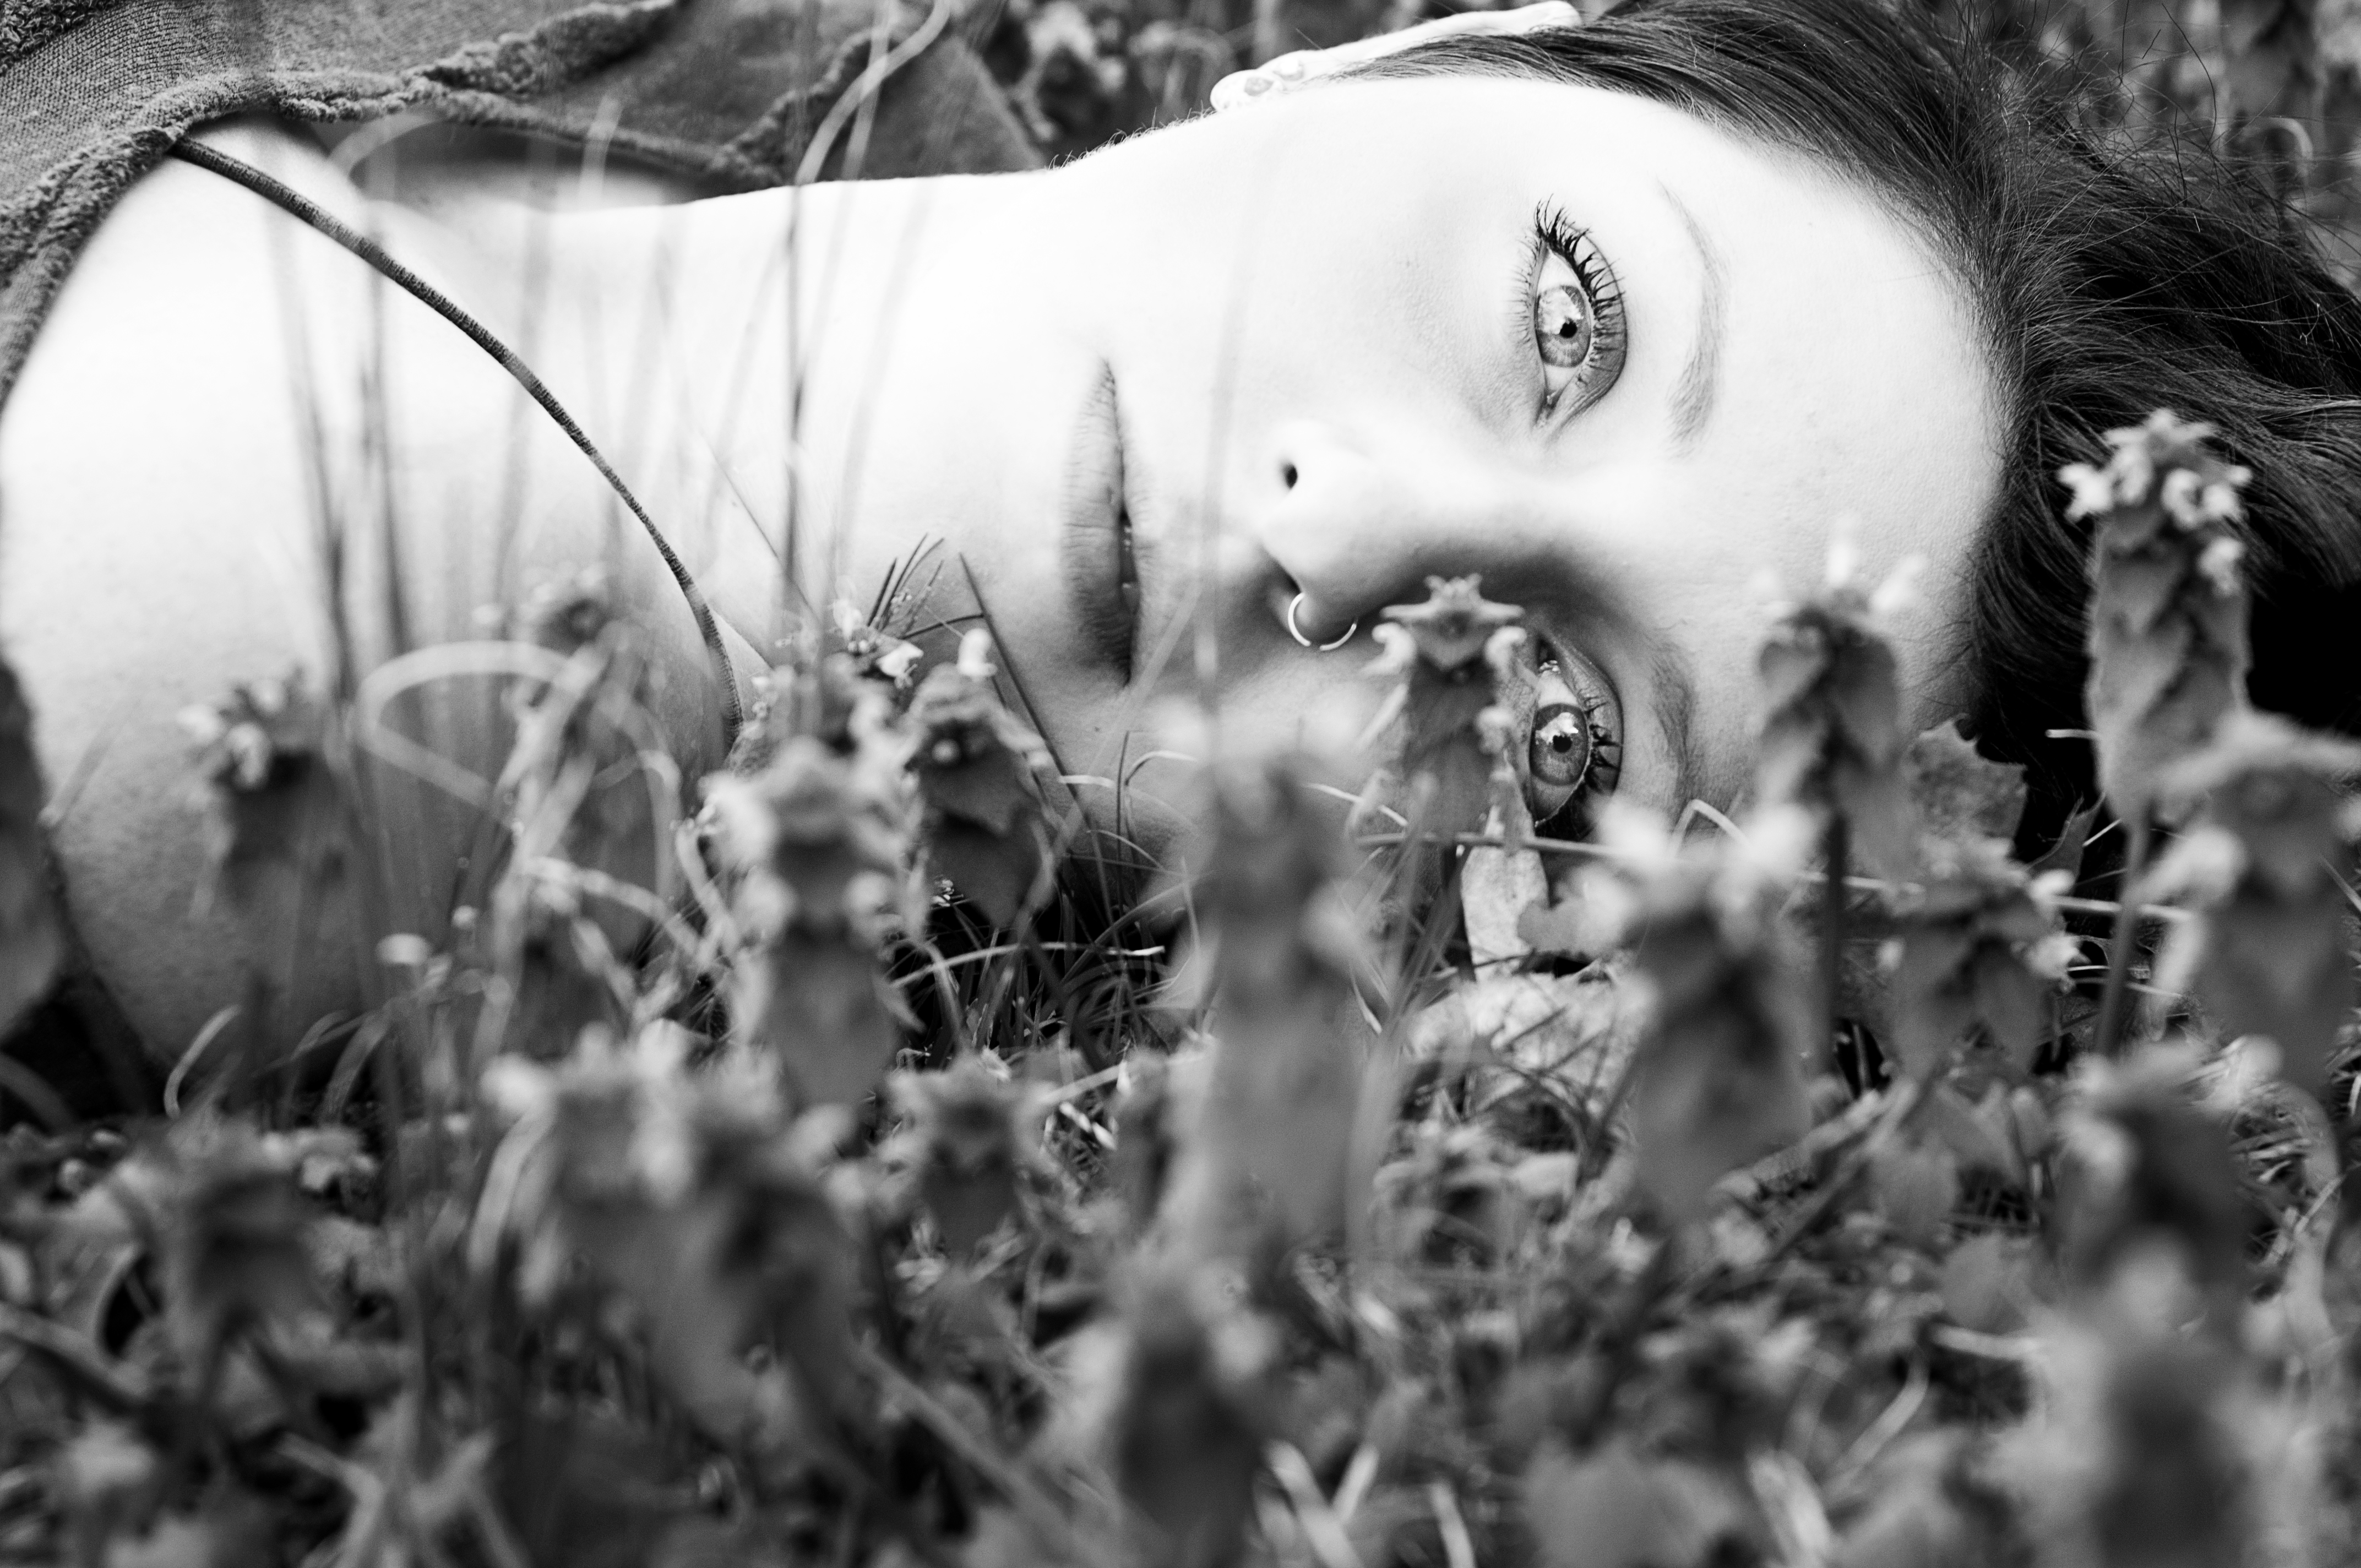 Laying in grass - Nashville Fashion Model Photography